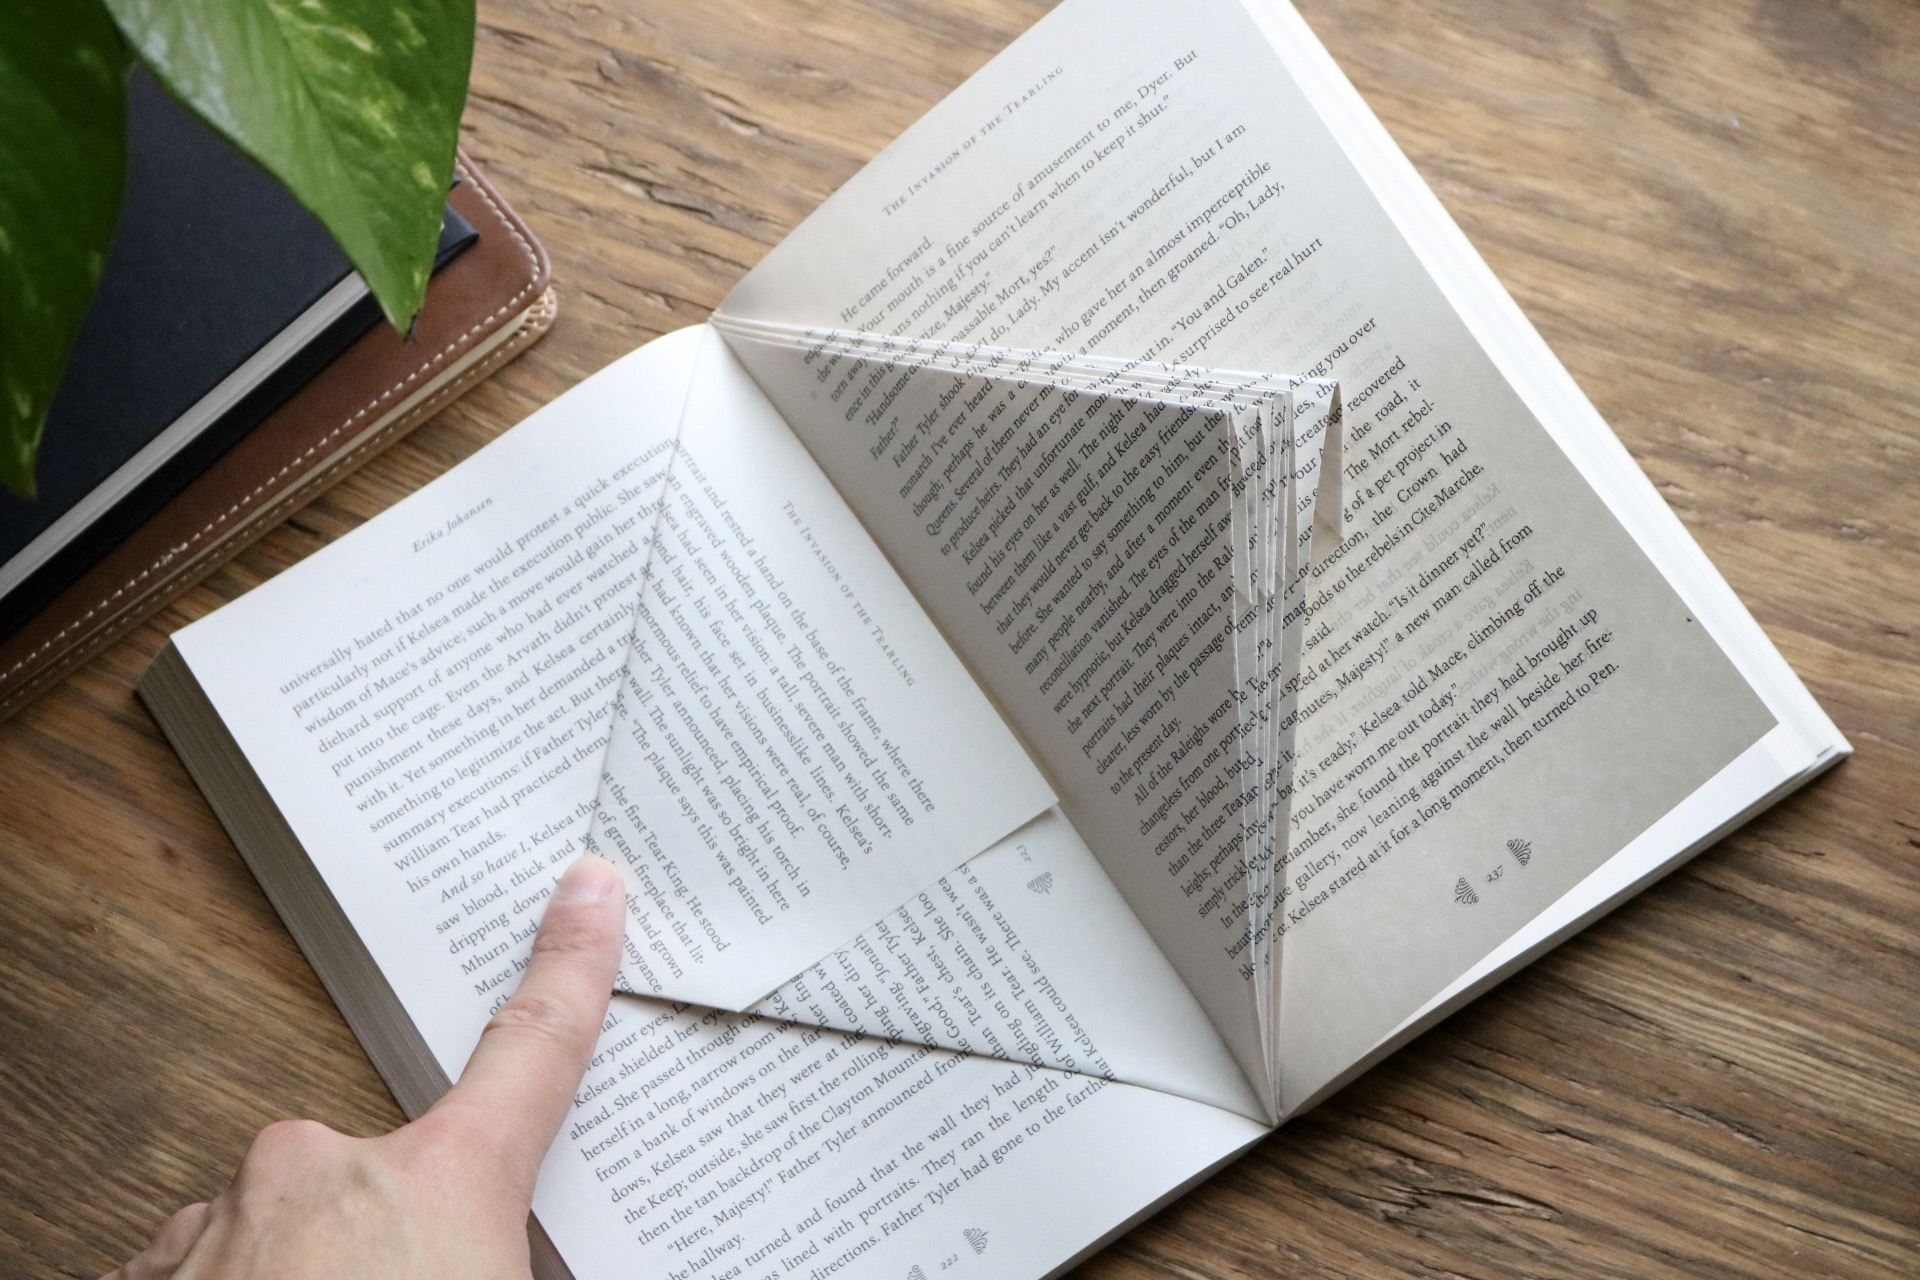 DIY Upcycled Folded Book Sculptures - Take old books or damaged books and turn them into a work or art by creating folded book art paper sculptures!  #falldiy #paper #bookworm #homedecor #falldecor #backtoschool #origami #papersculpture